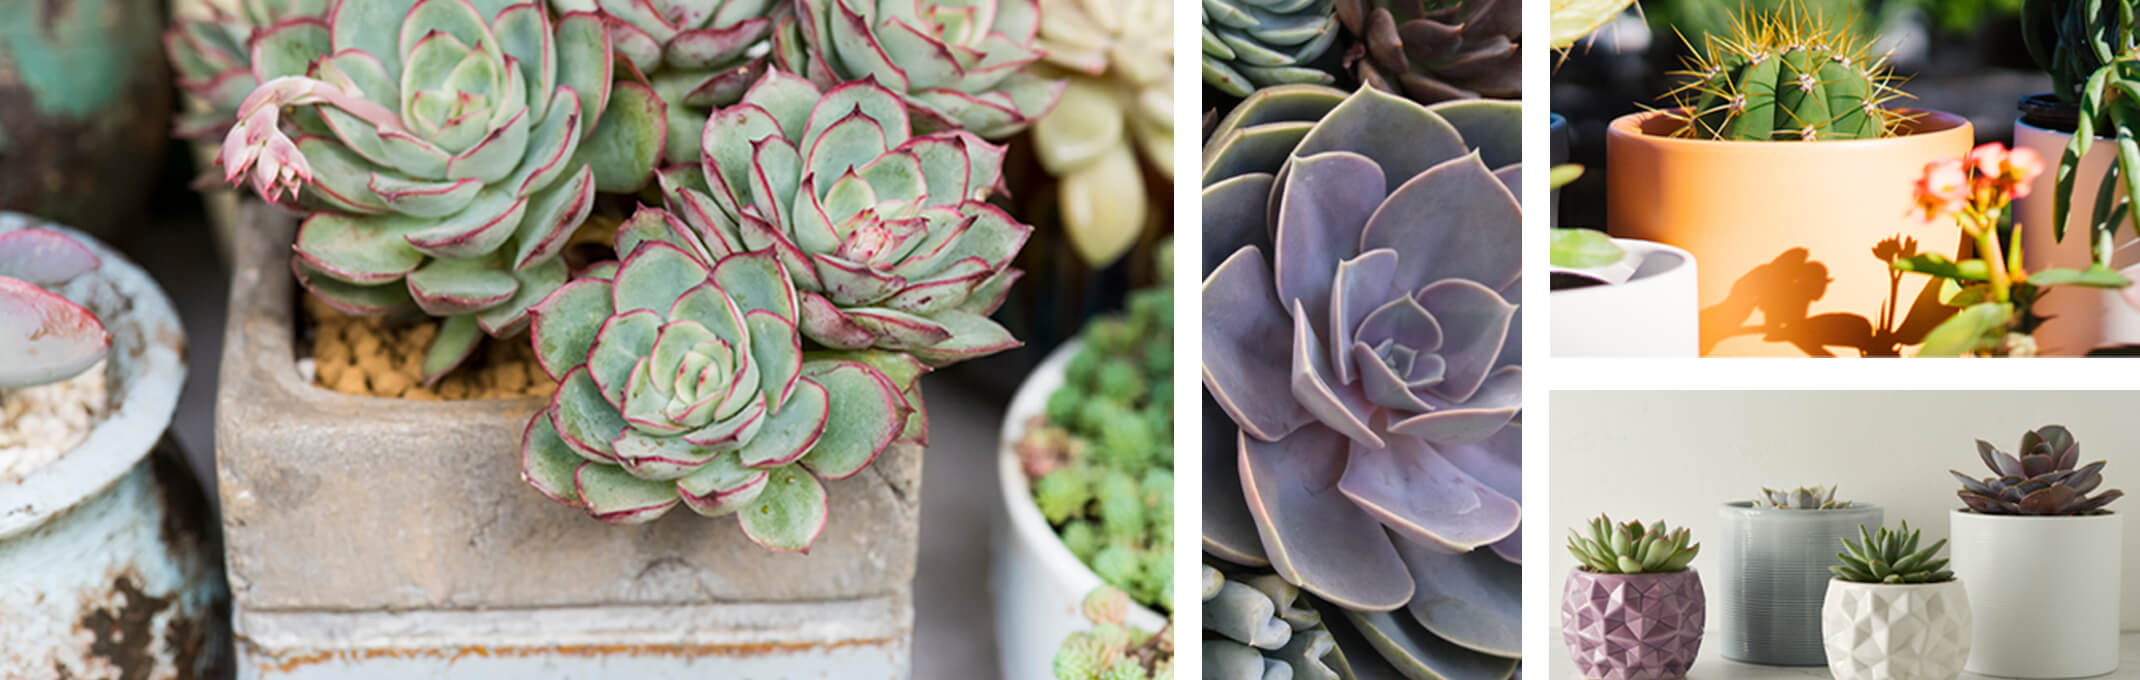 succulents in rustic containers, assorted succulents, cactus in peach and pebble pottery and single succulents in modern pots